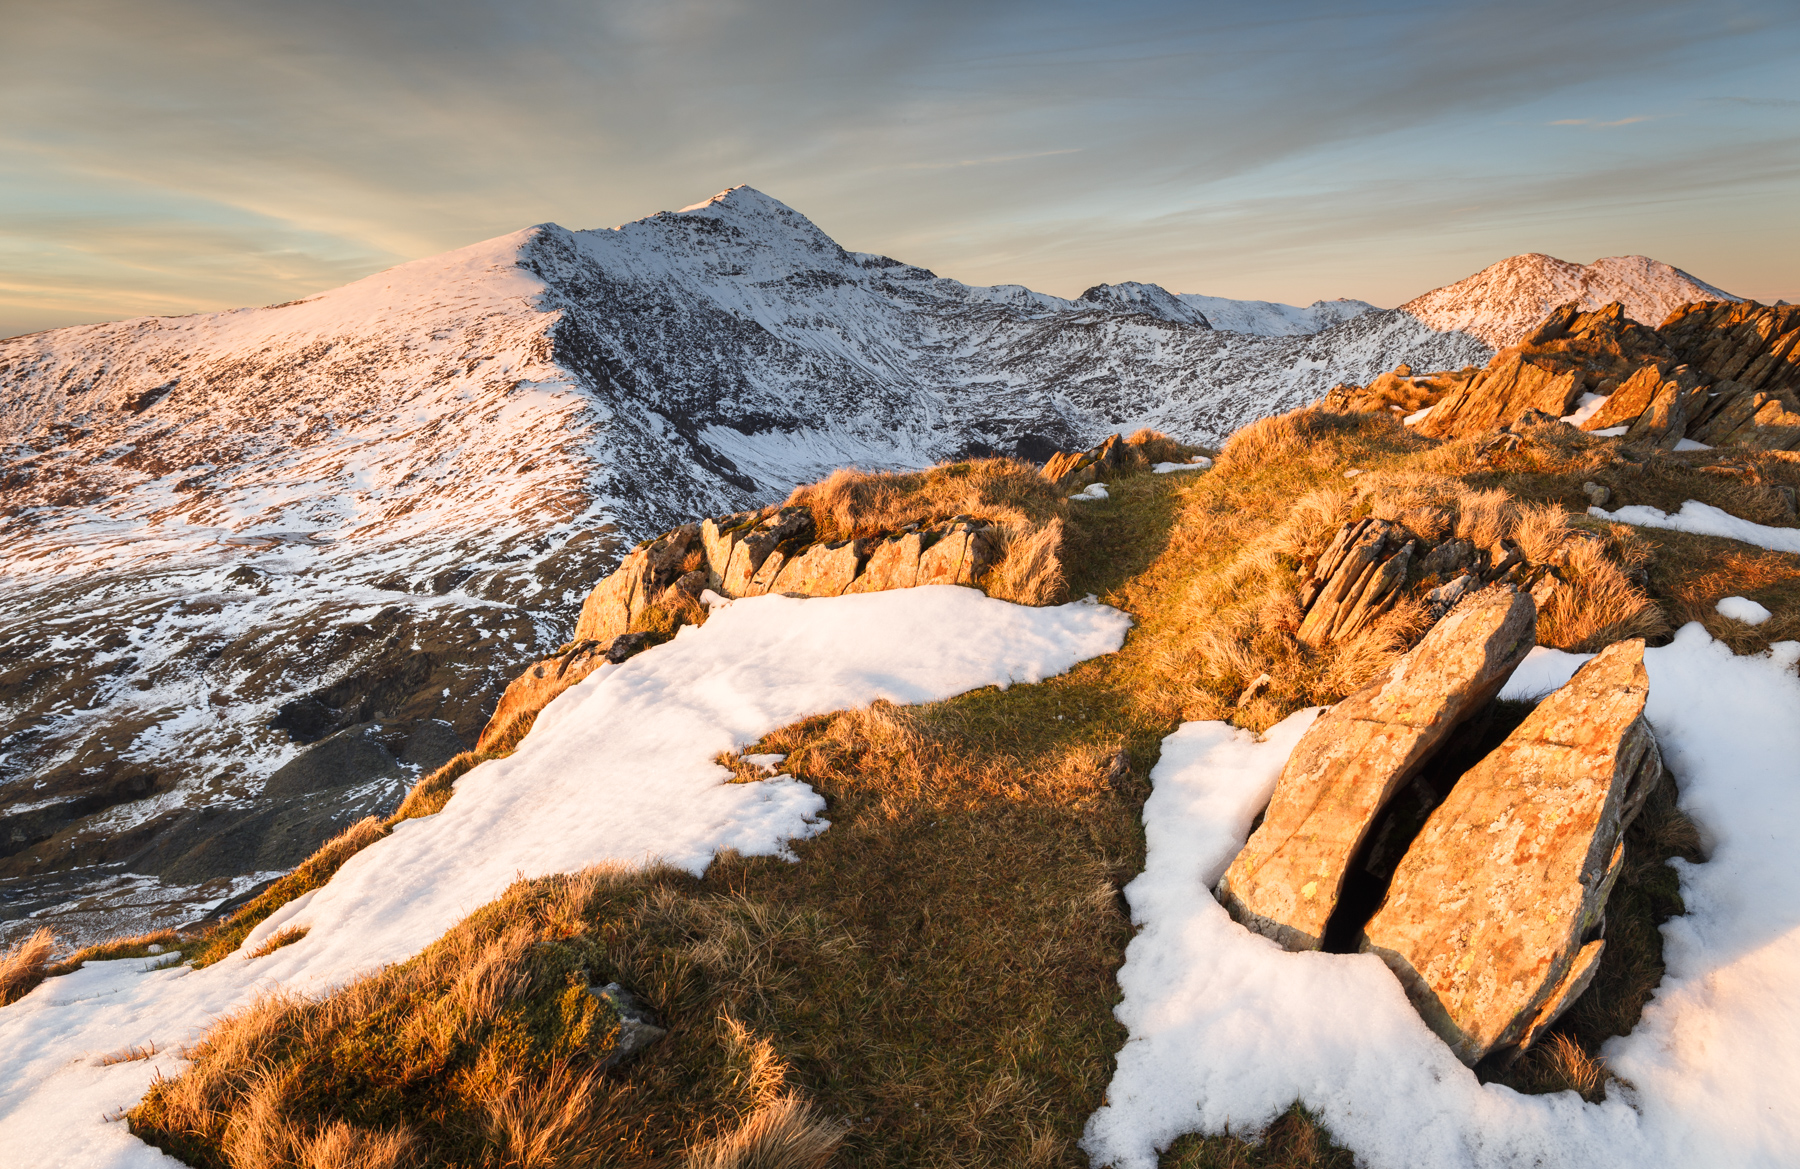 Rich evening light falls on Yr Aran with the Snowdon range beyond. Canon 6D, 24-70mm f/4 at 24mm, ISO 100, 1/10s at f/11, 0.9 LEE grad., Tripod. March. © Nick Livesey